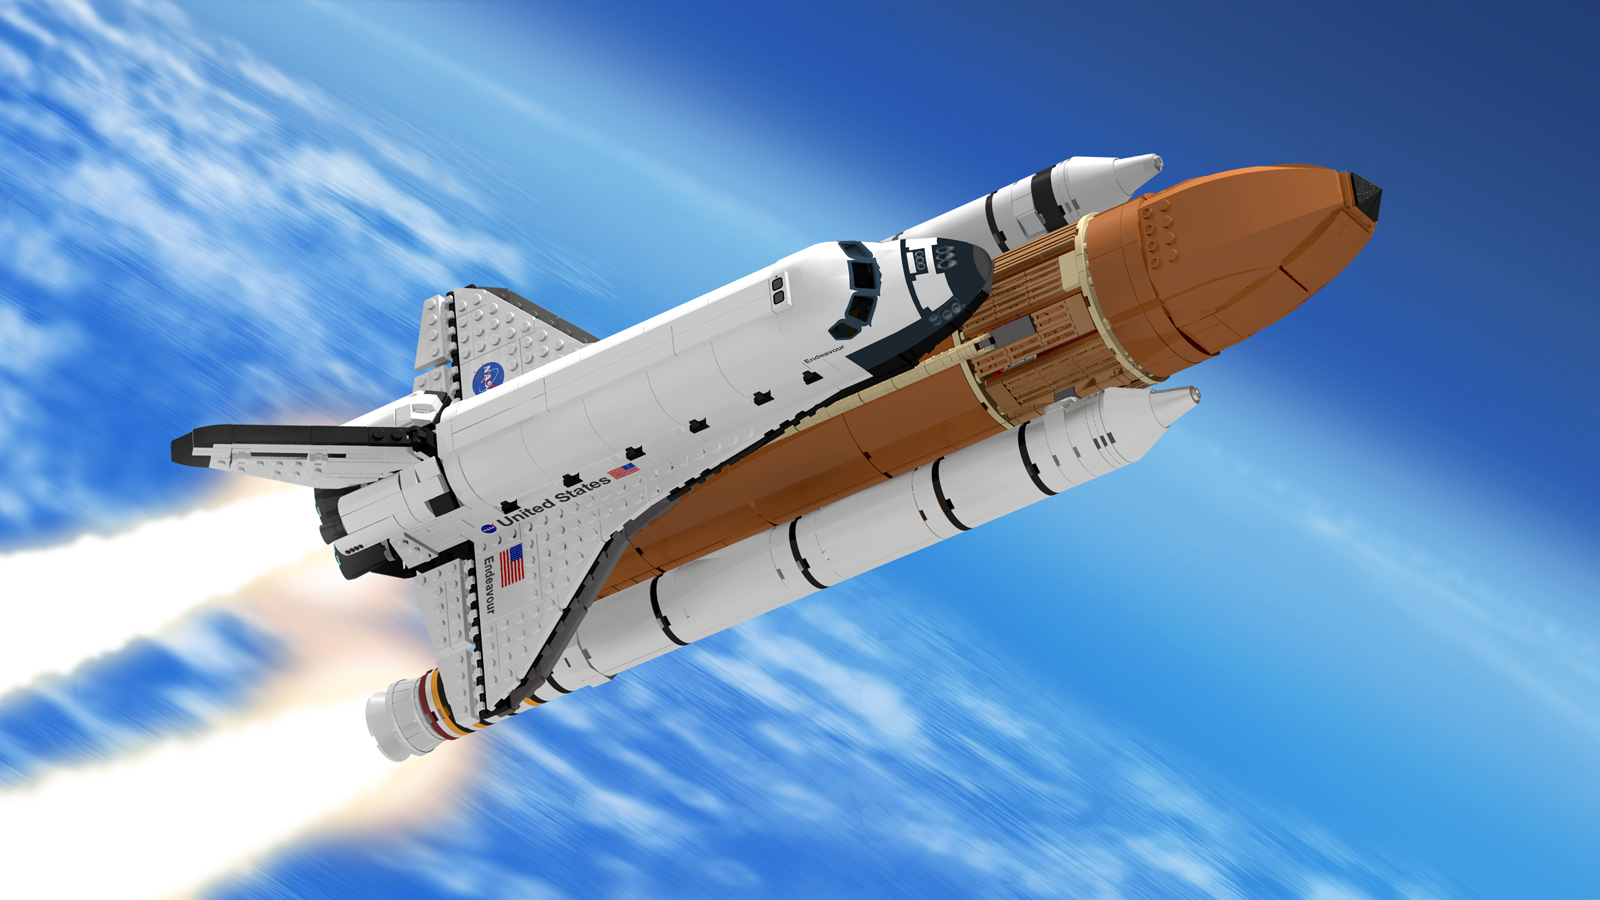 2017 newest space shuttle - photo #14